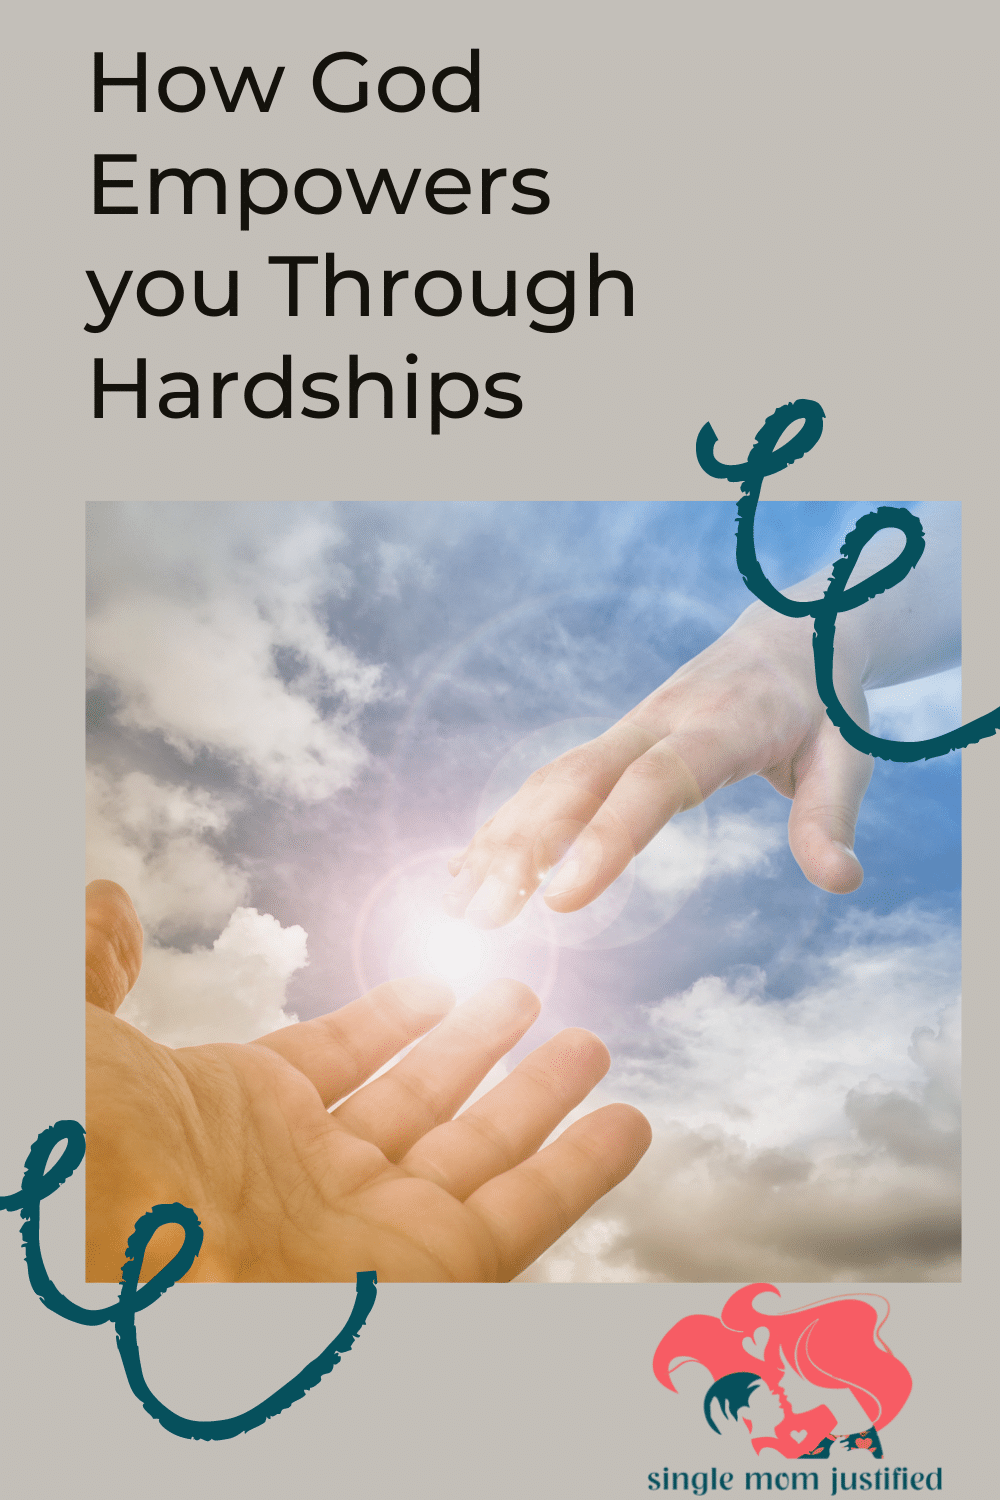 God will empower and strengthen you to leave an abusive relationship. God Helps during hardship!